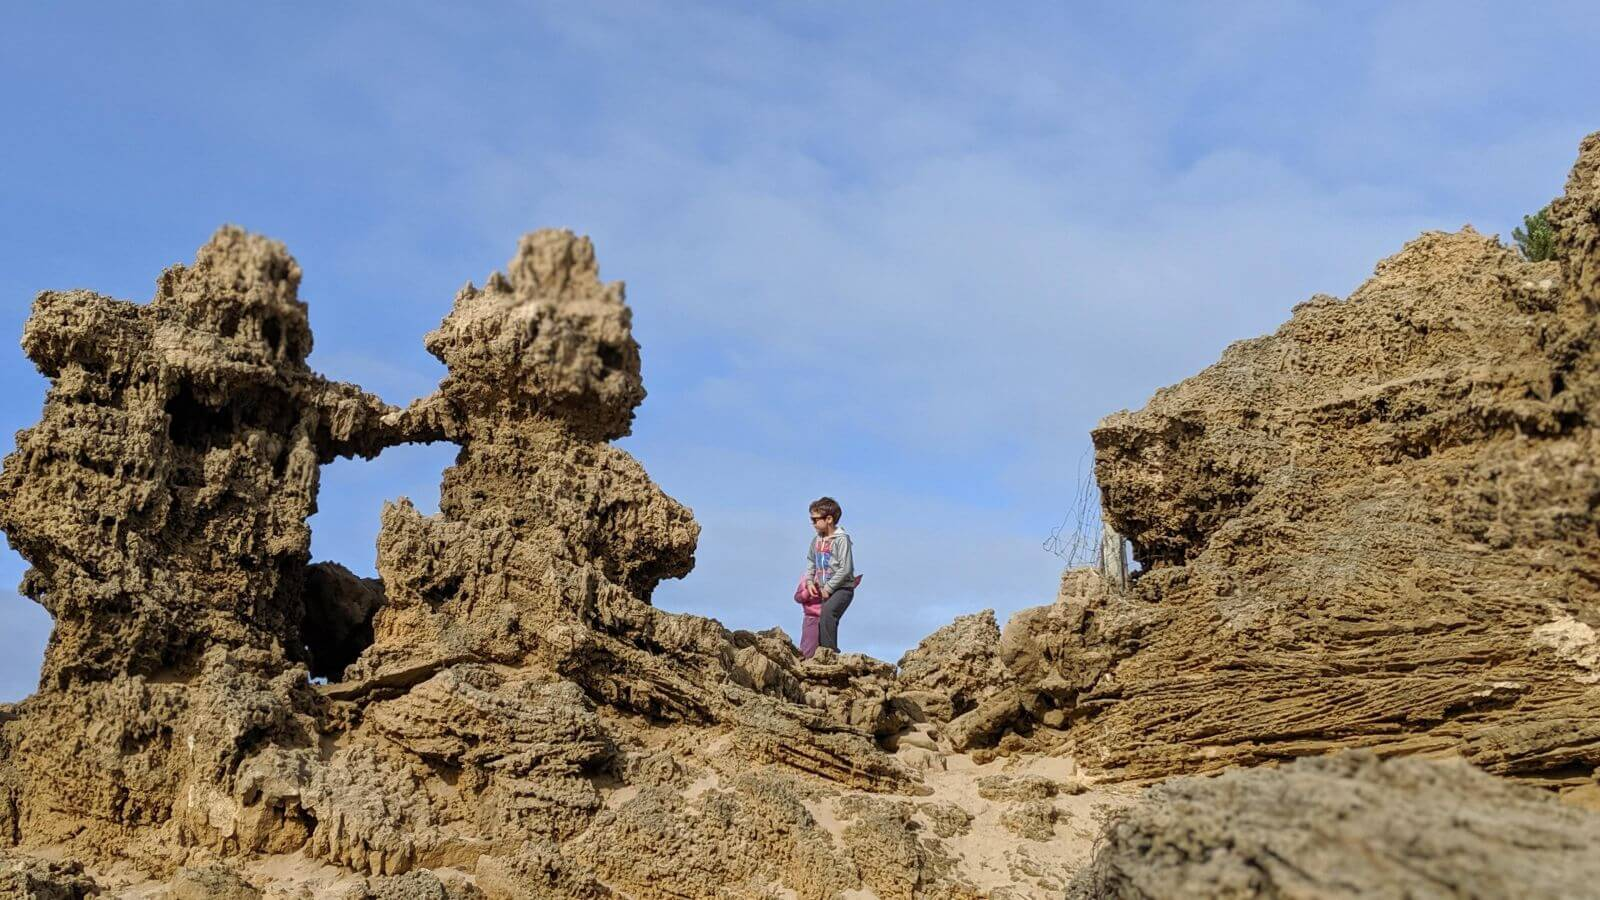 Awesome rock formations to explore at Anglesea Beach